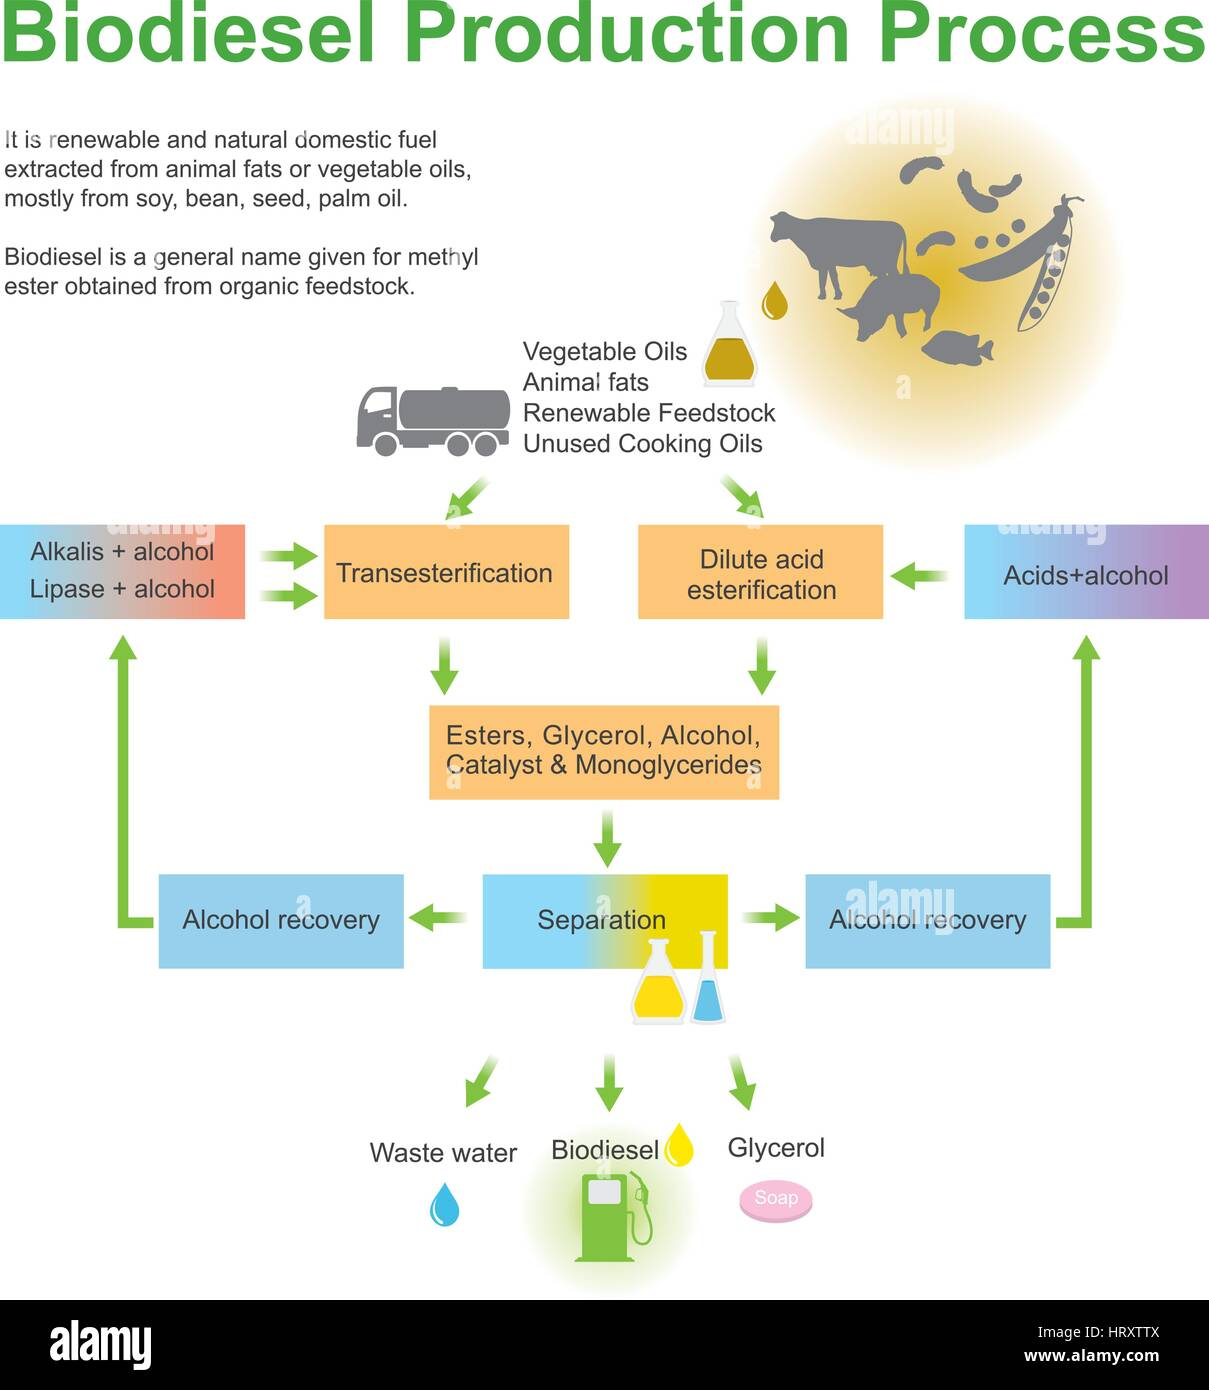 Biodiesel Production Process.It is renewable and natural domestic fuel extracted from animal fats or vegetable oils - Stock Image